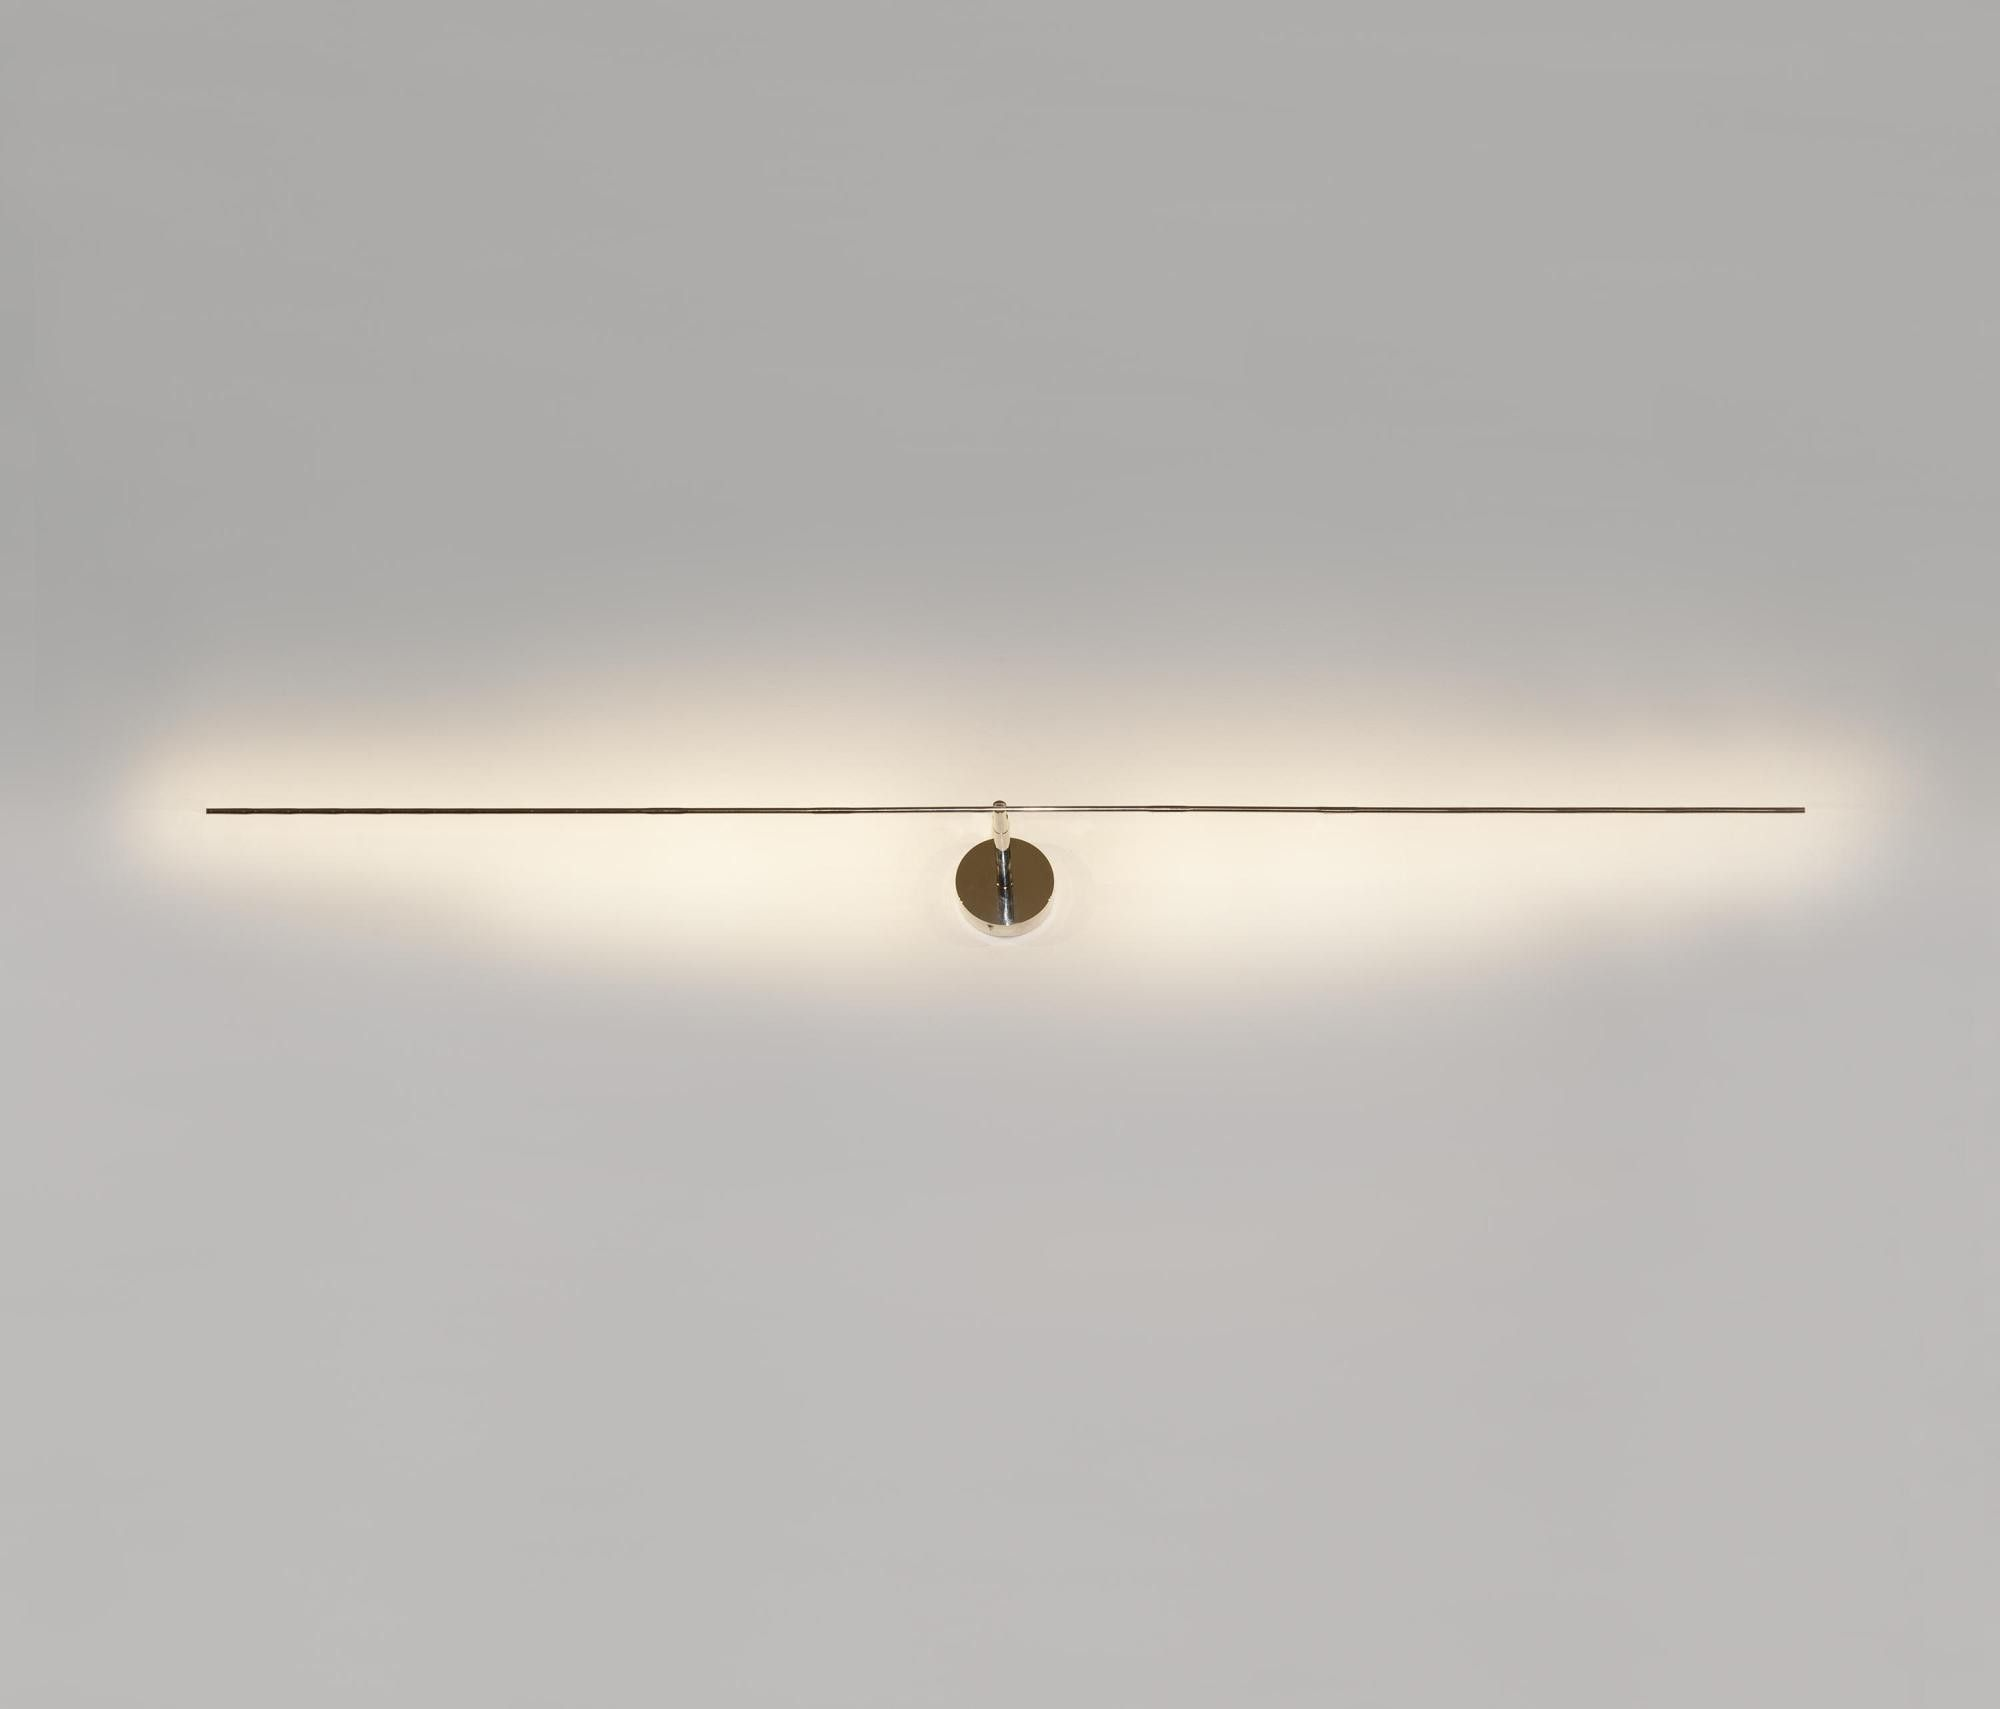 Catellani Smith Light Stick Cw Nickel Ceiling Lights At Wall Lamps Online Shop 1001lights In 2020 Gold Ceiling Light Ceiling Lights Wall Mounted Light